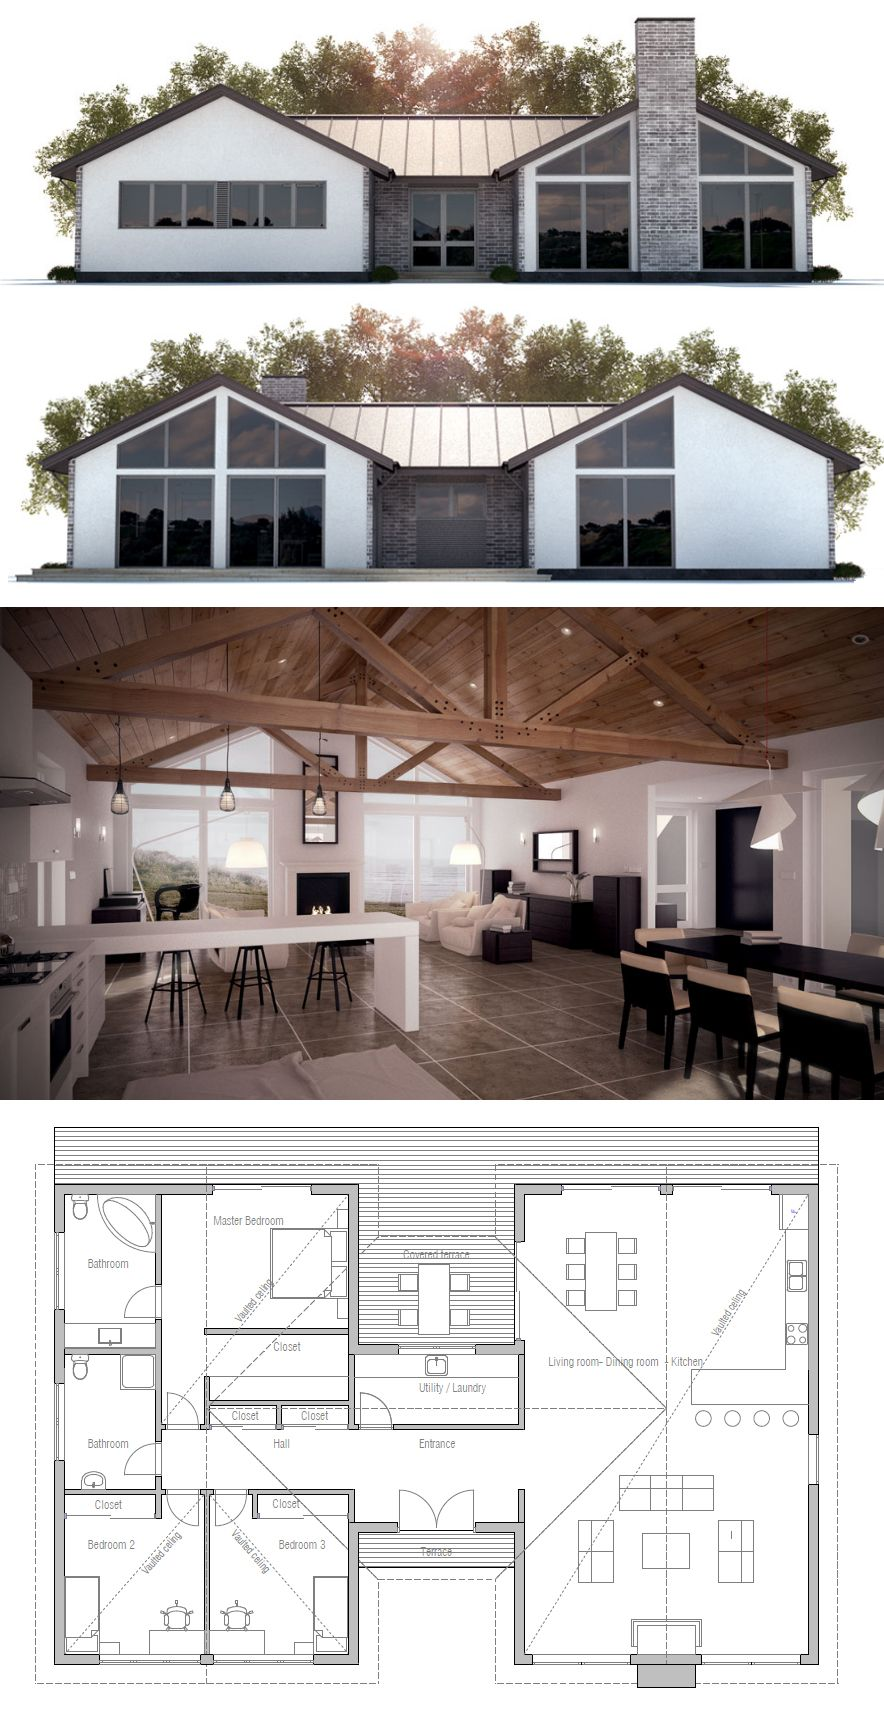 House plan house plans pinterest house exposed for House plans with exposed beams